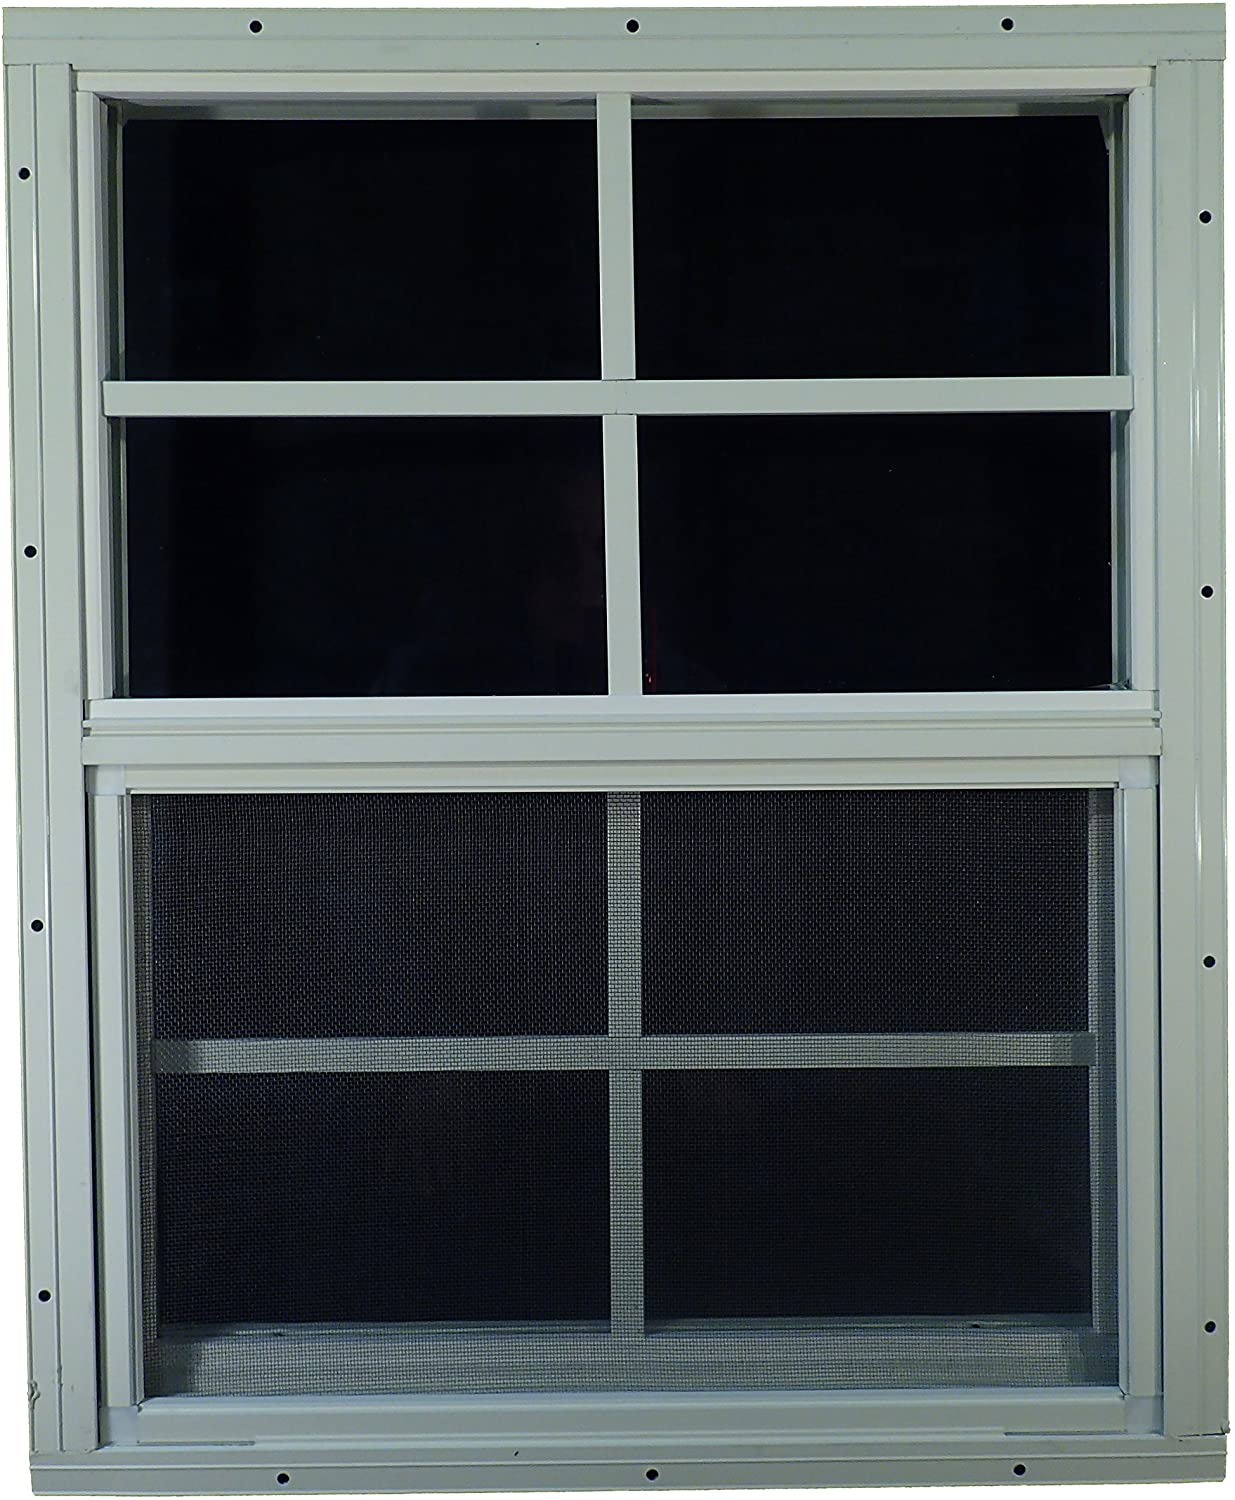 Shed Windows and More USA Made 18 x 27 Tempered Glass White Flush Shed Windows Chicken Coop Playhouse Windows